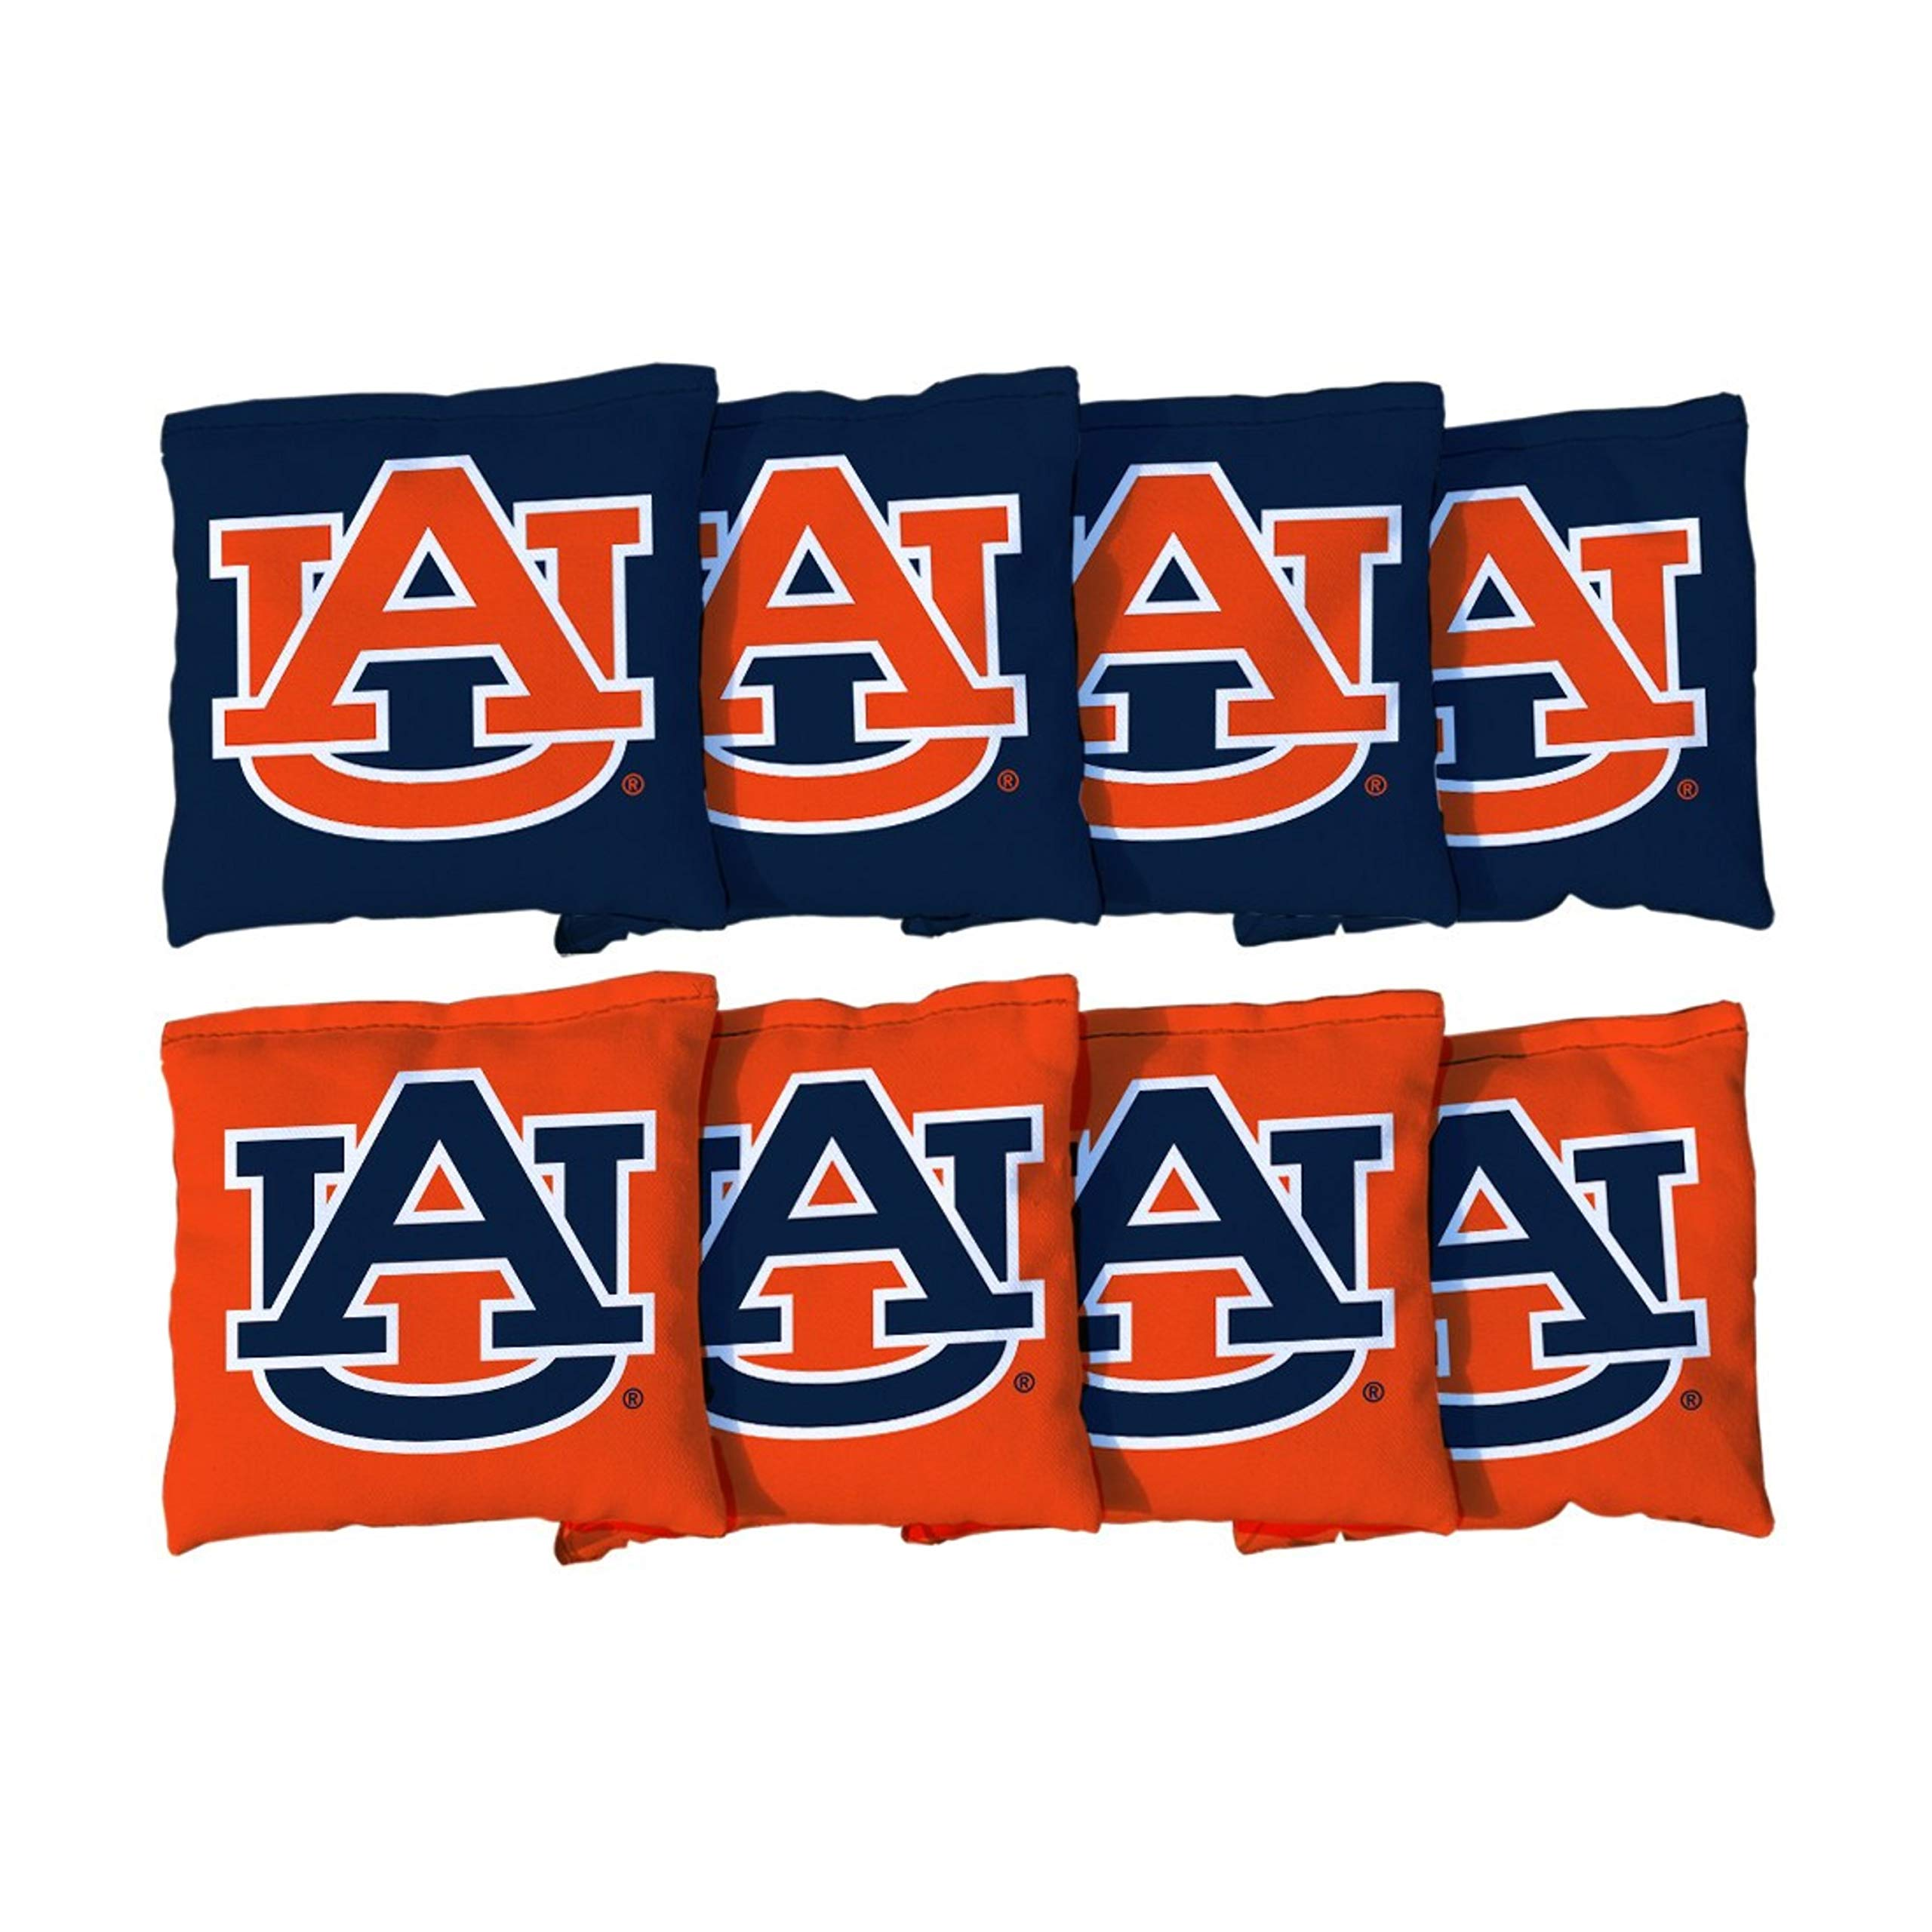 Victory Tailgate NCAA Collegiate Regulation Cornhole Game Bag Set (8 Bags Included, Corn-Filled) - Auburn University Tigers by Victory Tailgate